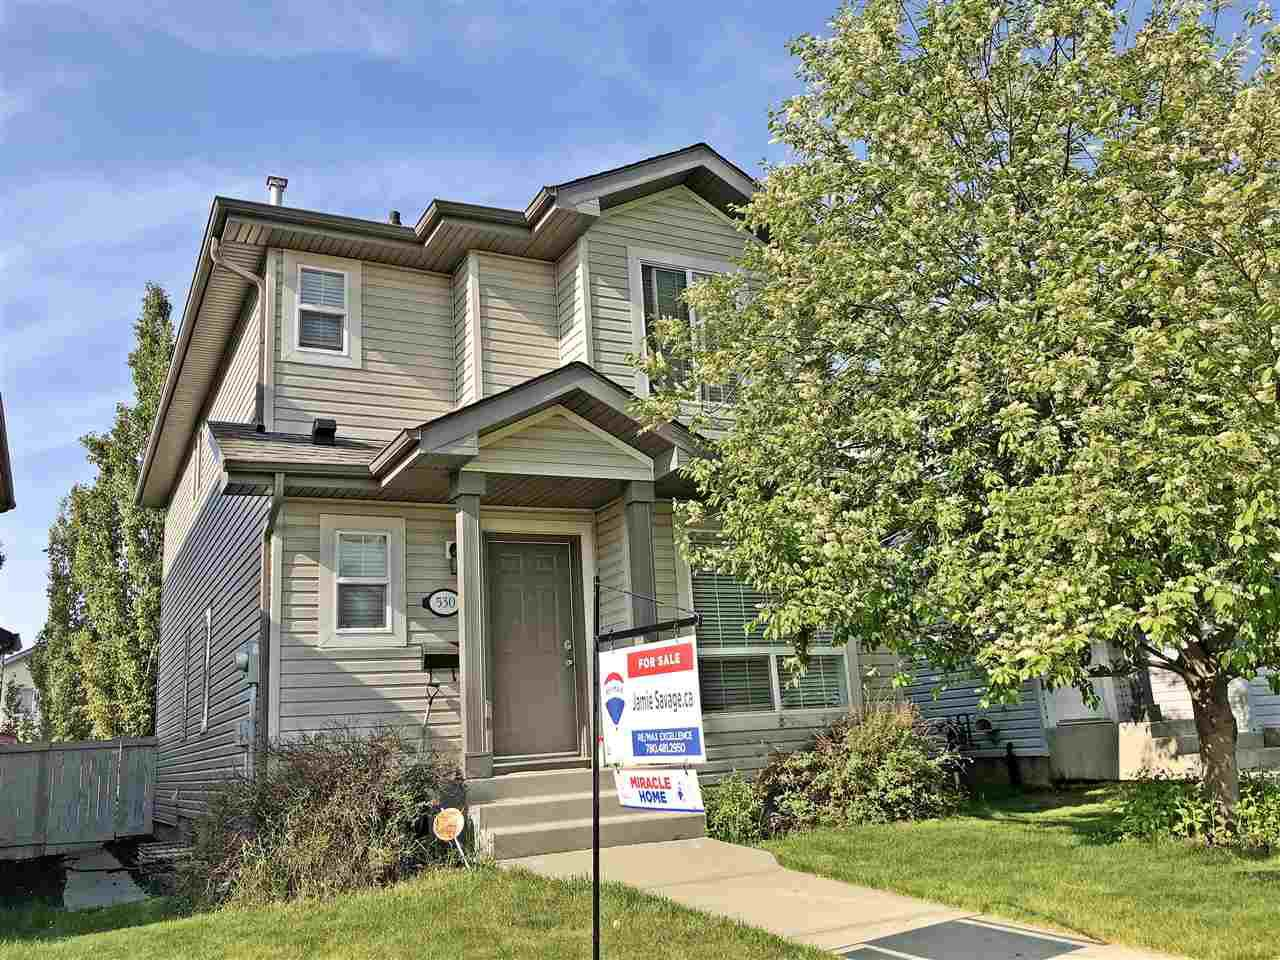 Main Photo: 530 GEISSINGER LO NW in Edmonton: Zone 58 House for sale : MLS®# E4158785